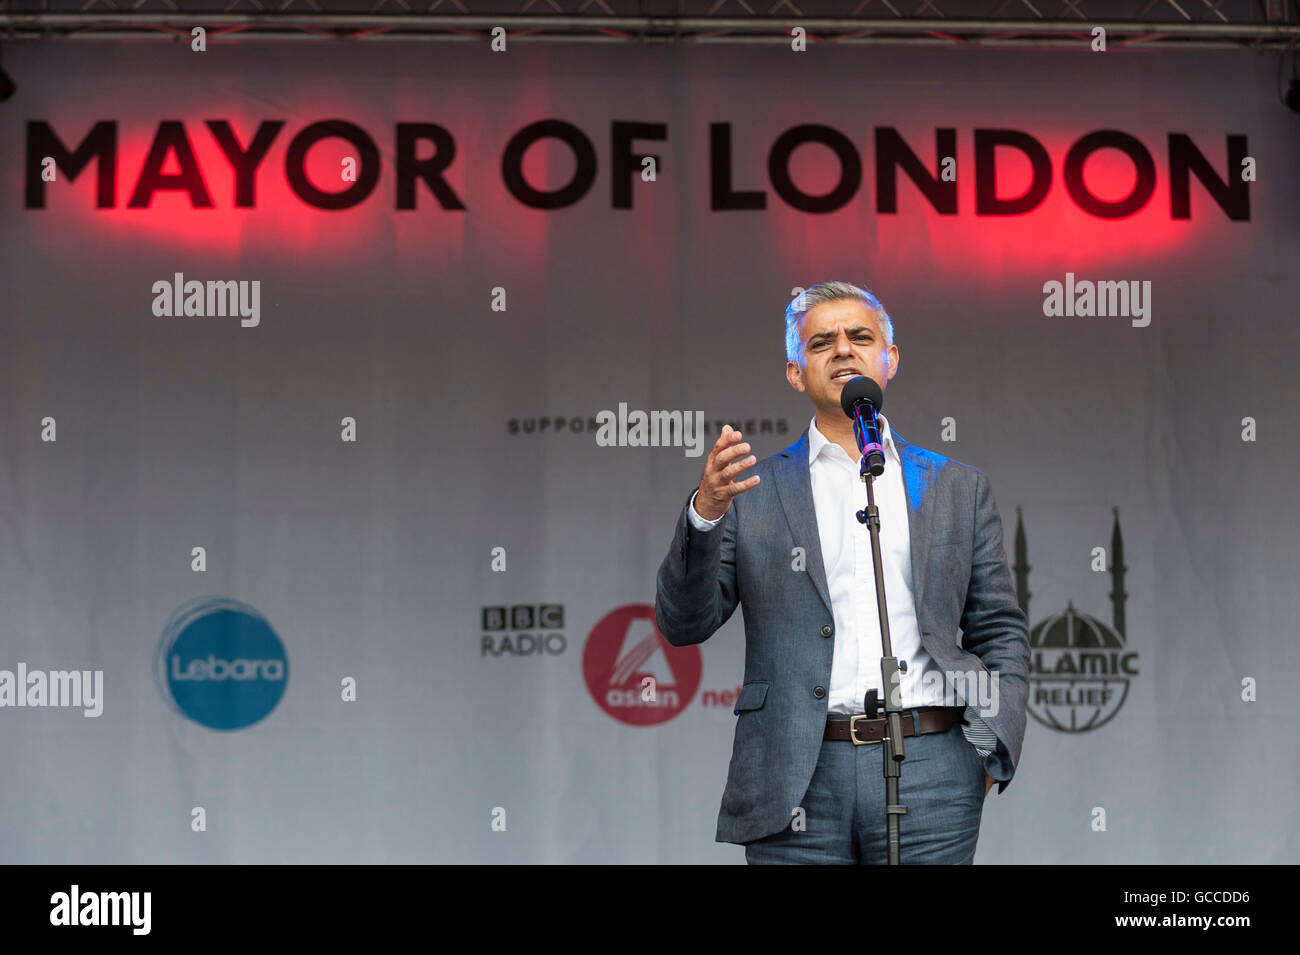 London, UK.  9 July 2016.  London's first Muslim Mayor of London,  Sadiq Khan, addresses large crowds on stage - Stock Image